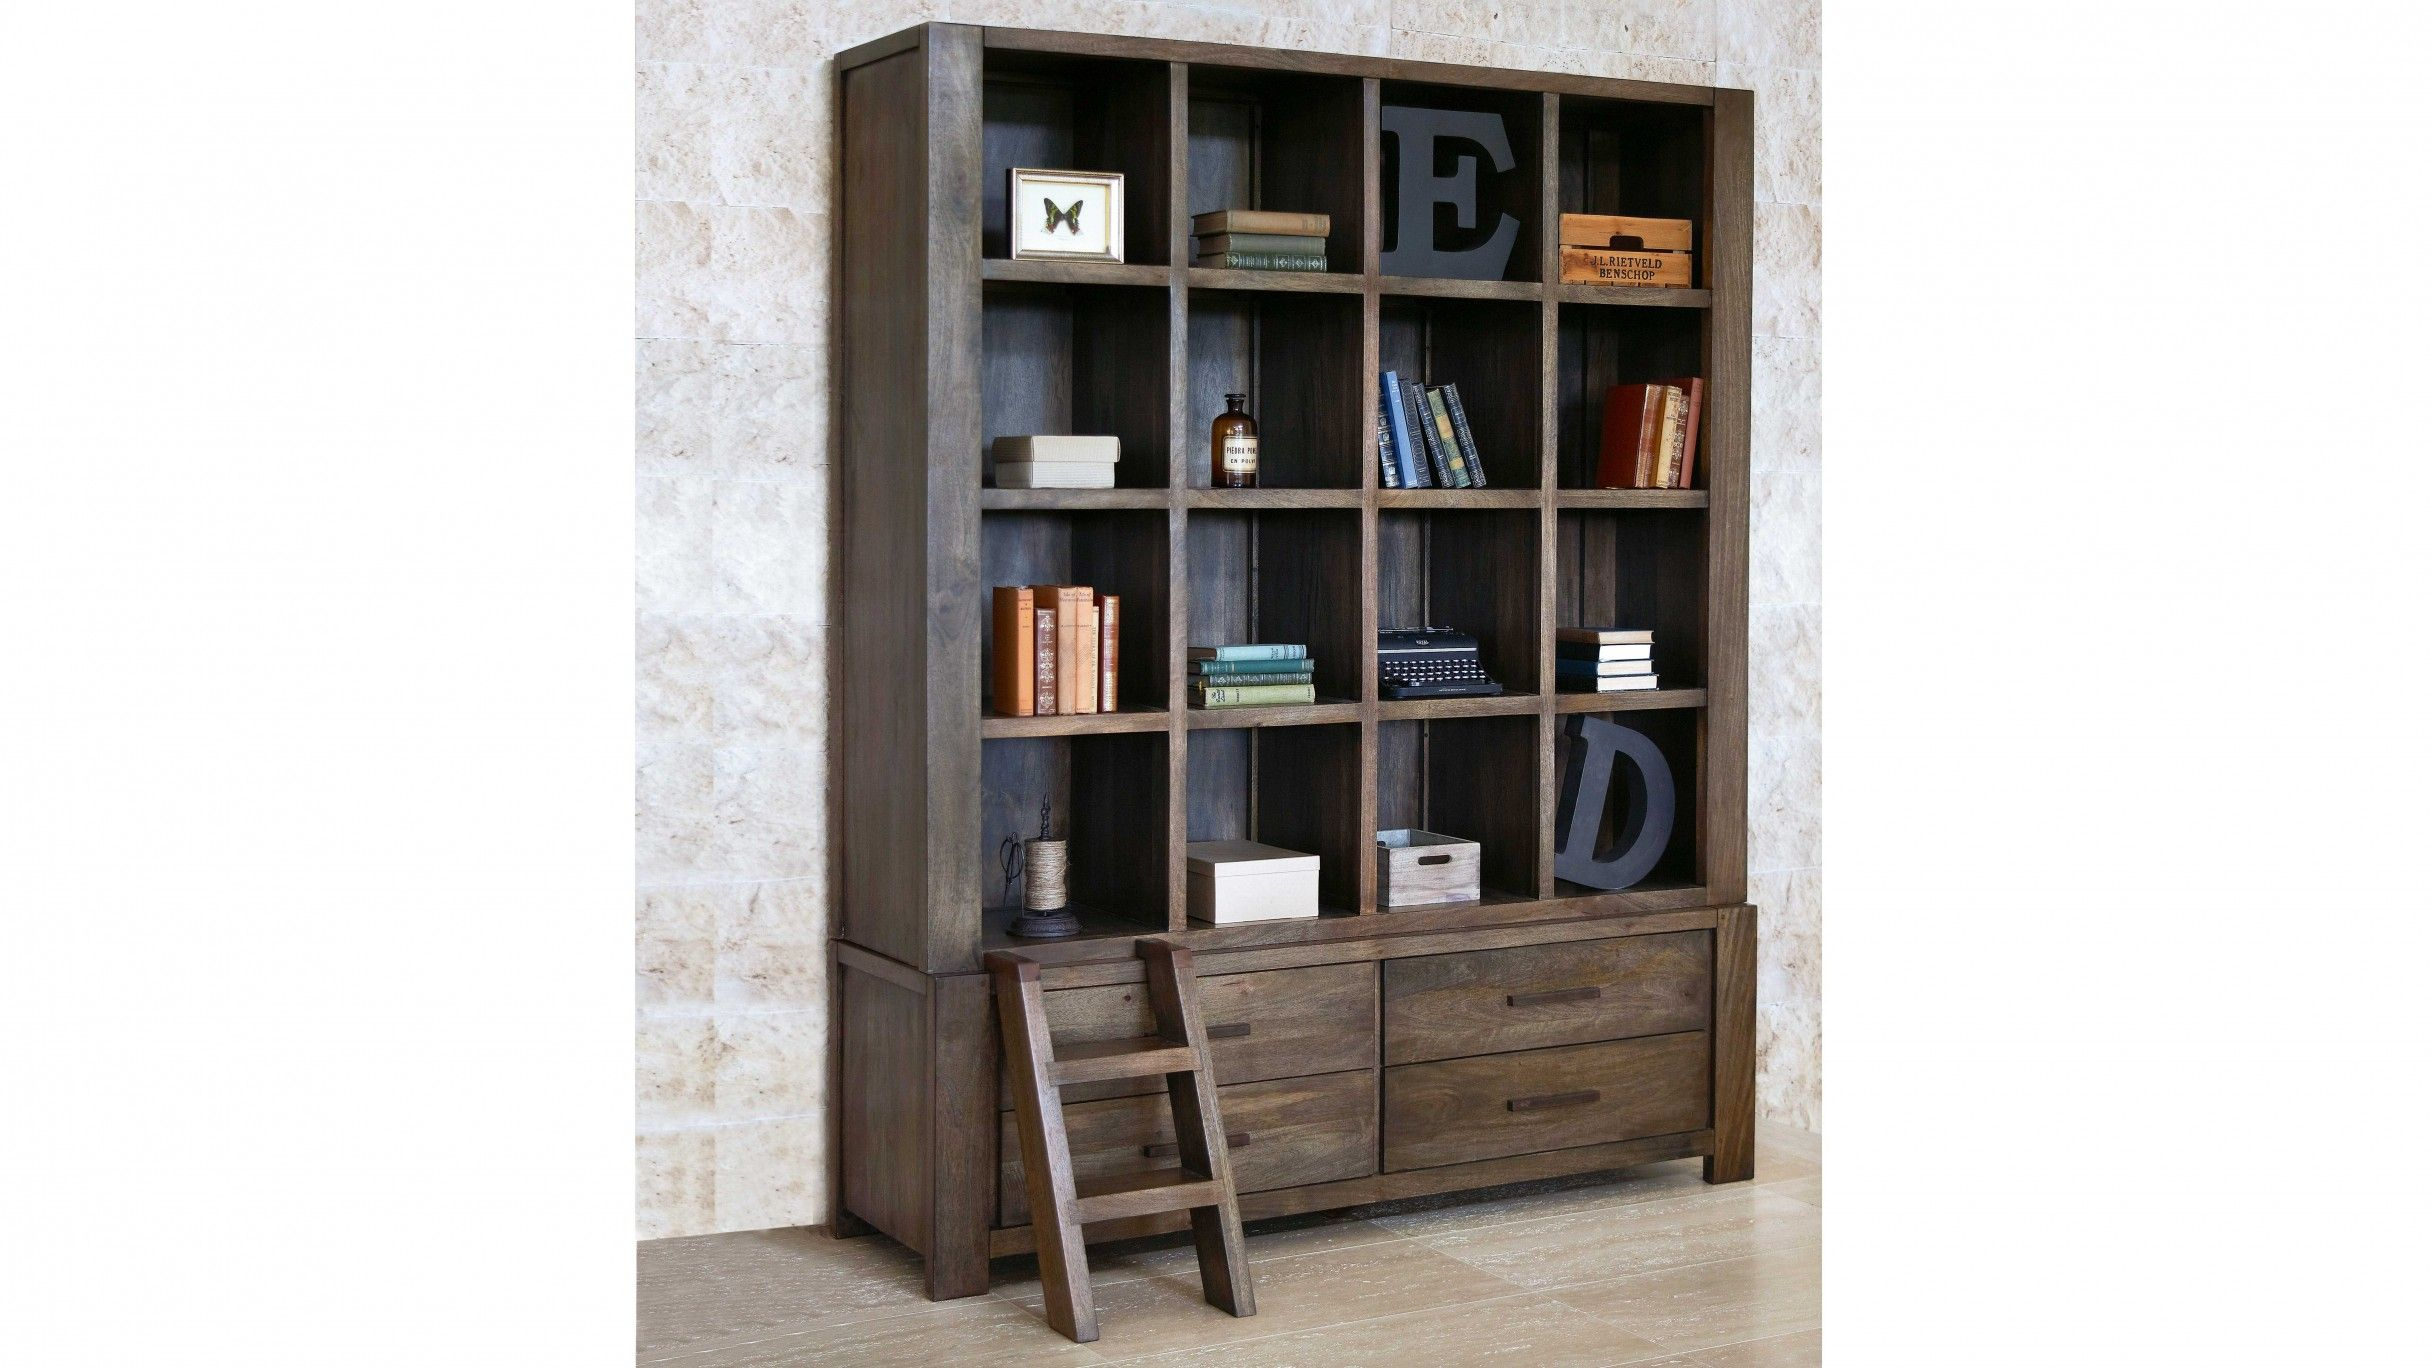 Hampton Wall Unit Bookcase harvey norman | For my home | Pinterest ...